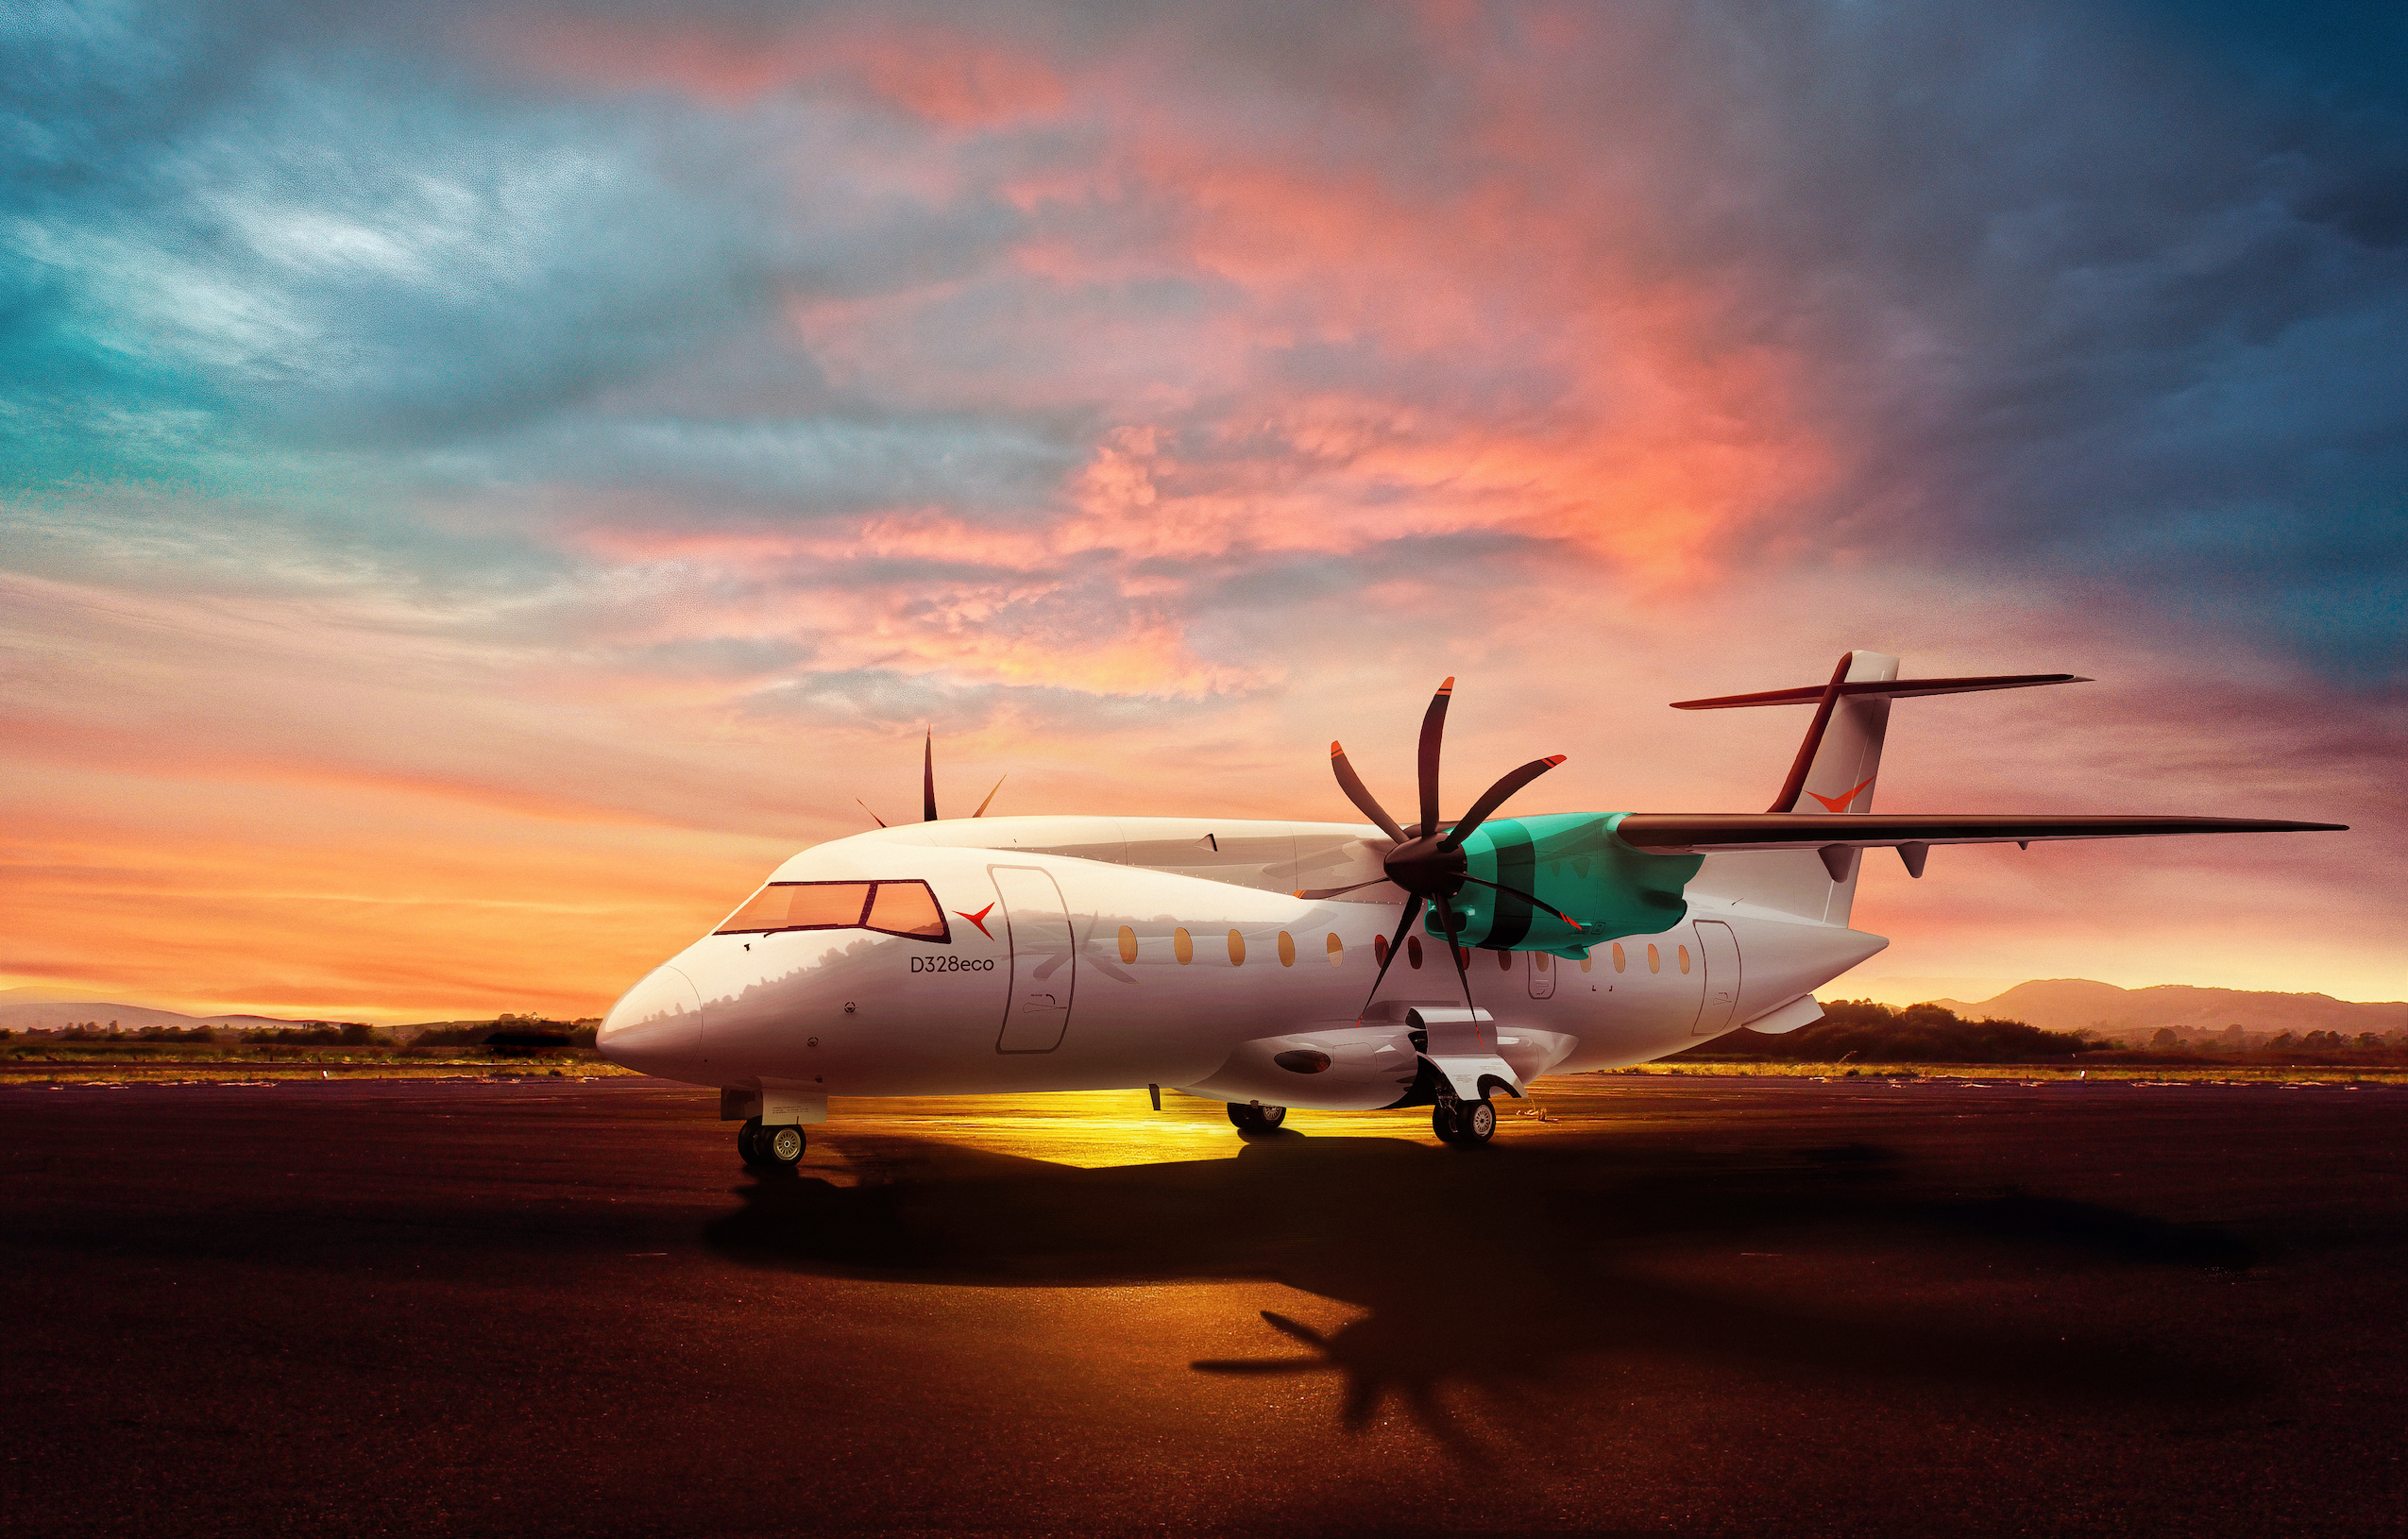 Deutsche Aircraft to shape the future of aviation as D328eco™ aircraft accelerates transition to zero emissions aircraft